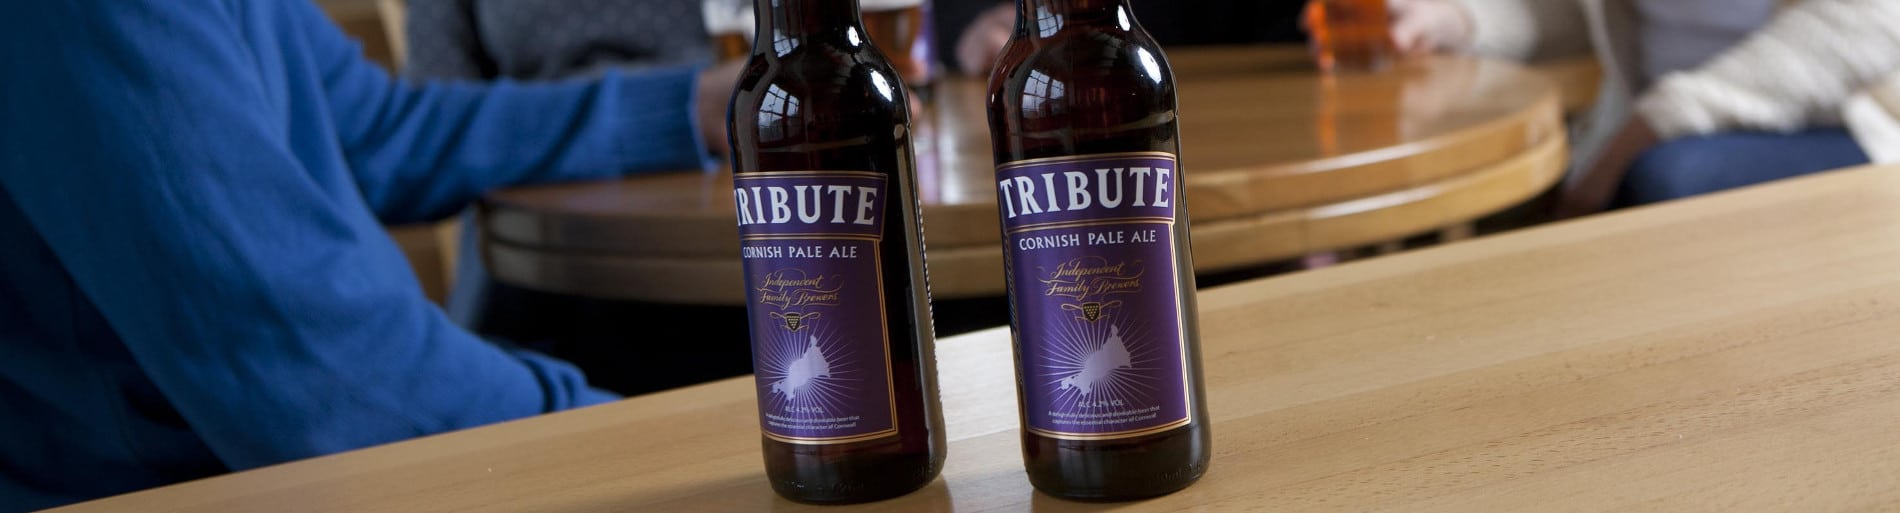 St Austell Brewery Crowned West of England Business of the Year